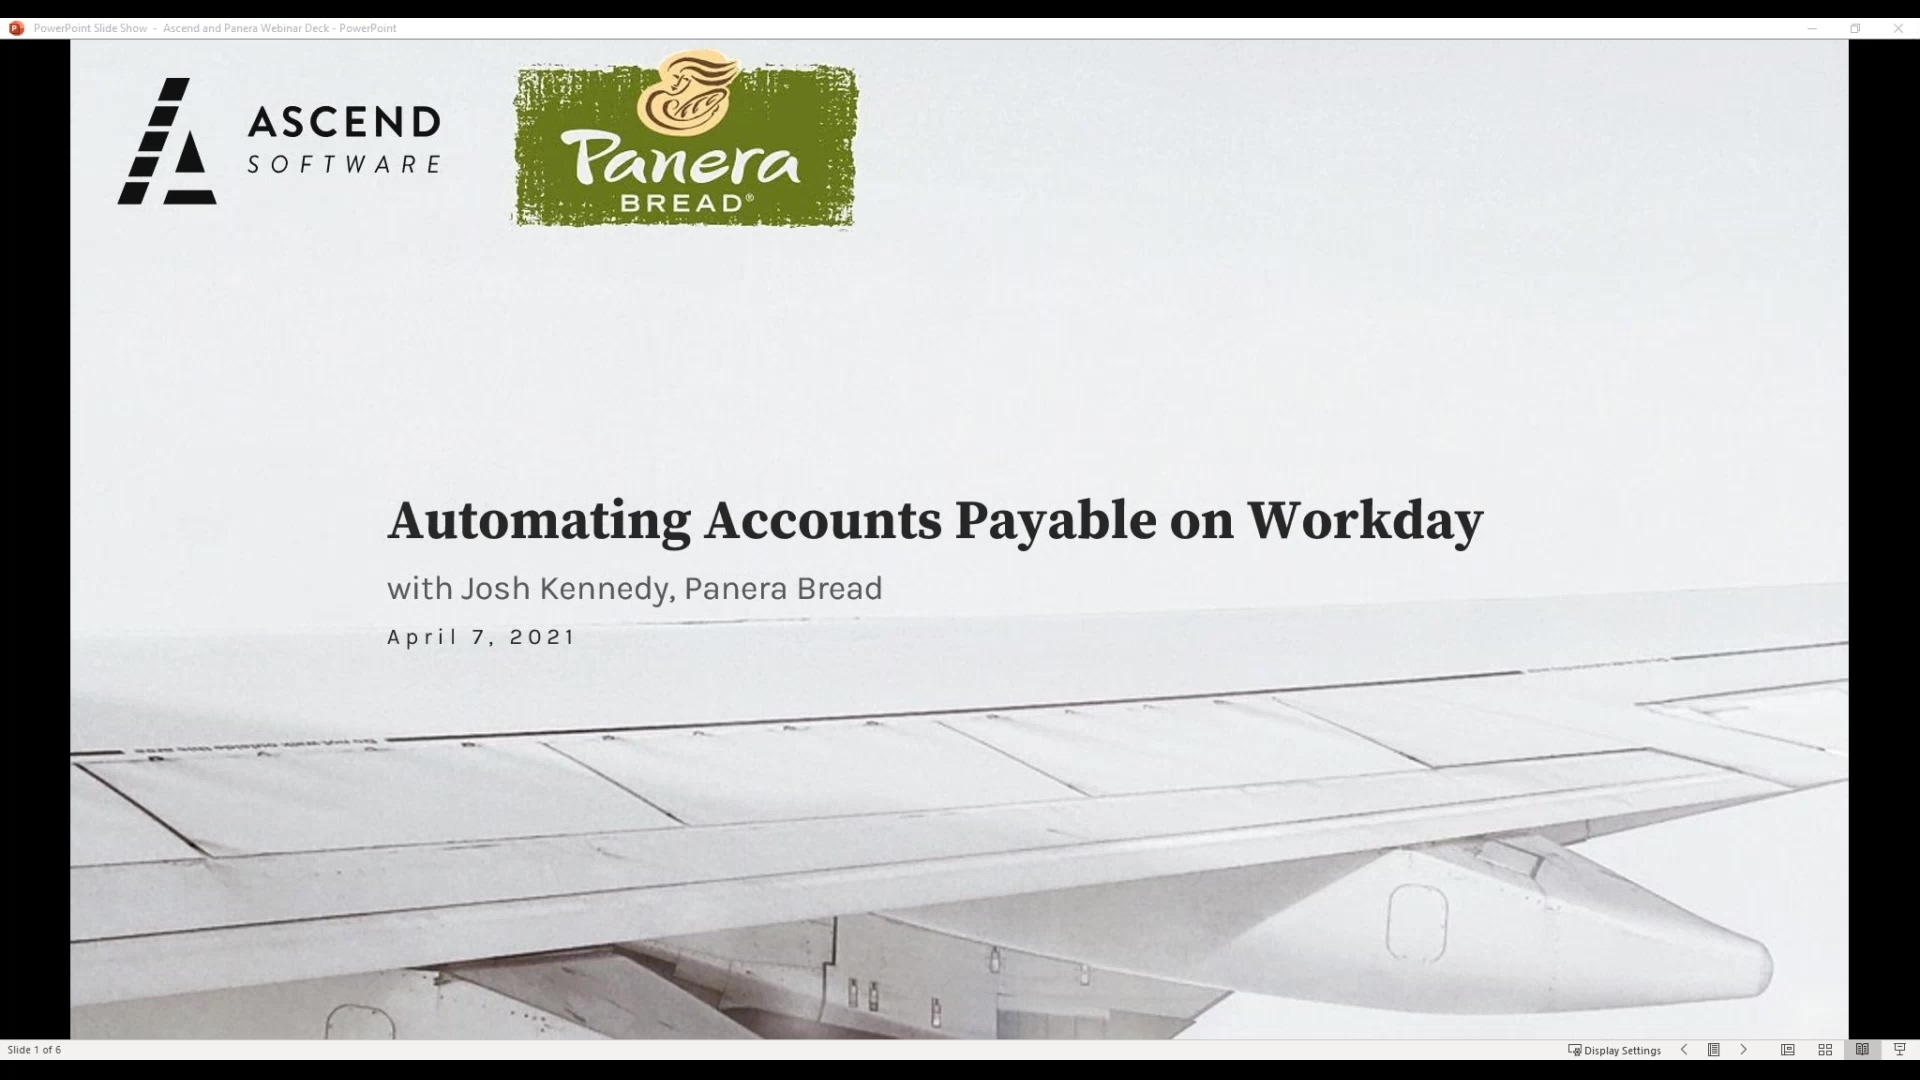 Ascend Webinar - How Panera Automated Accounts Payable on Workday